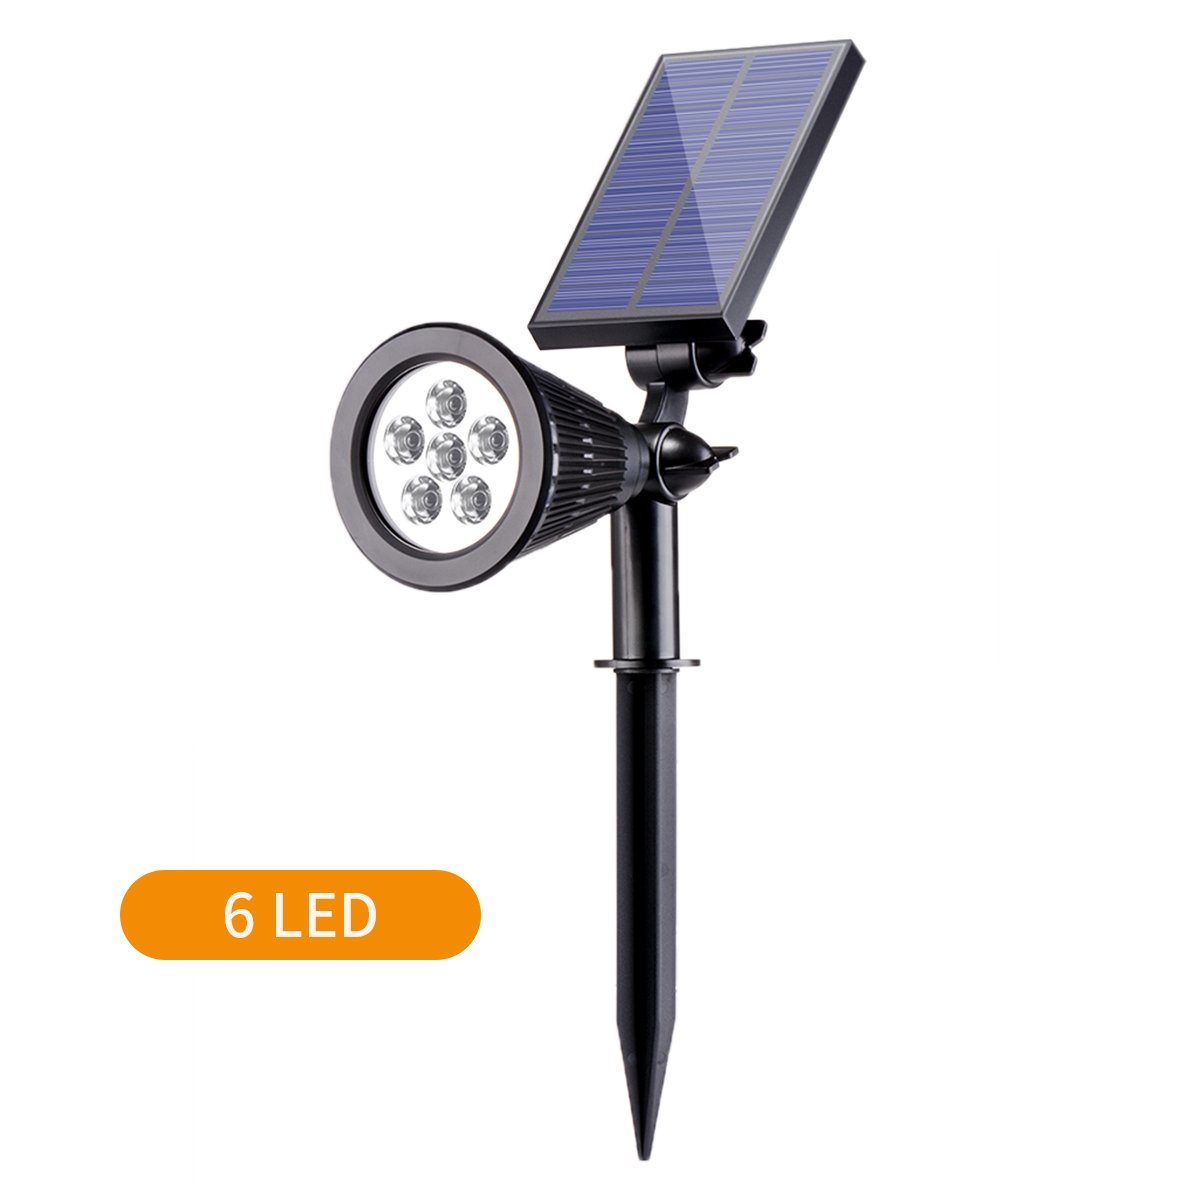 Solar Spotlight,Sunix 2-in-1 Waterproof 6 LED Solar Landscape Light Adjustable Wall Light, Dark Sensing Auto On/Off Outdoor Security Lighting for Yard Garden Driveway Pathway Pool (1 Pack) by Sunix